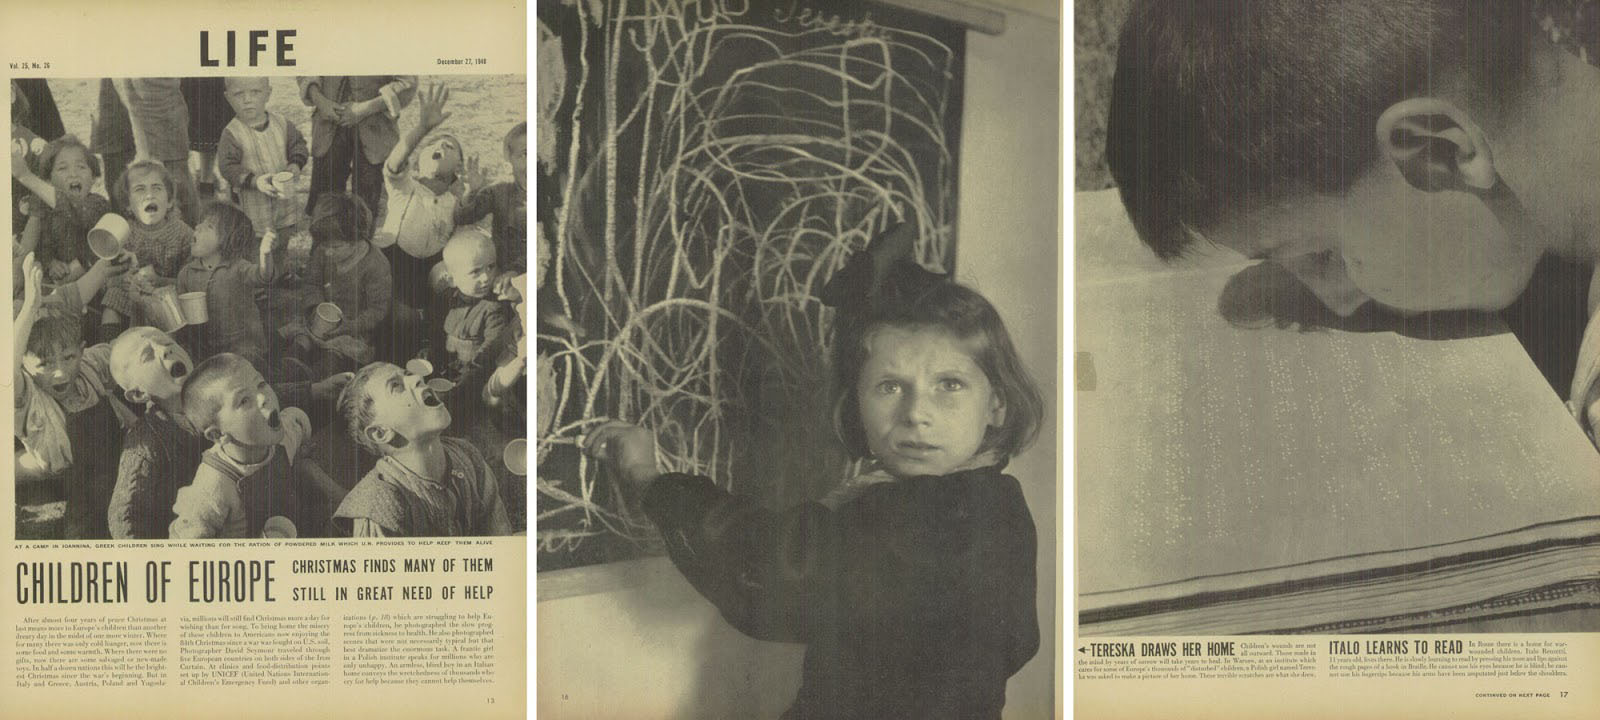 David 'Chim' Seymour's photographs as they appeared in LIFE magazine in December 1948.